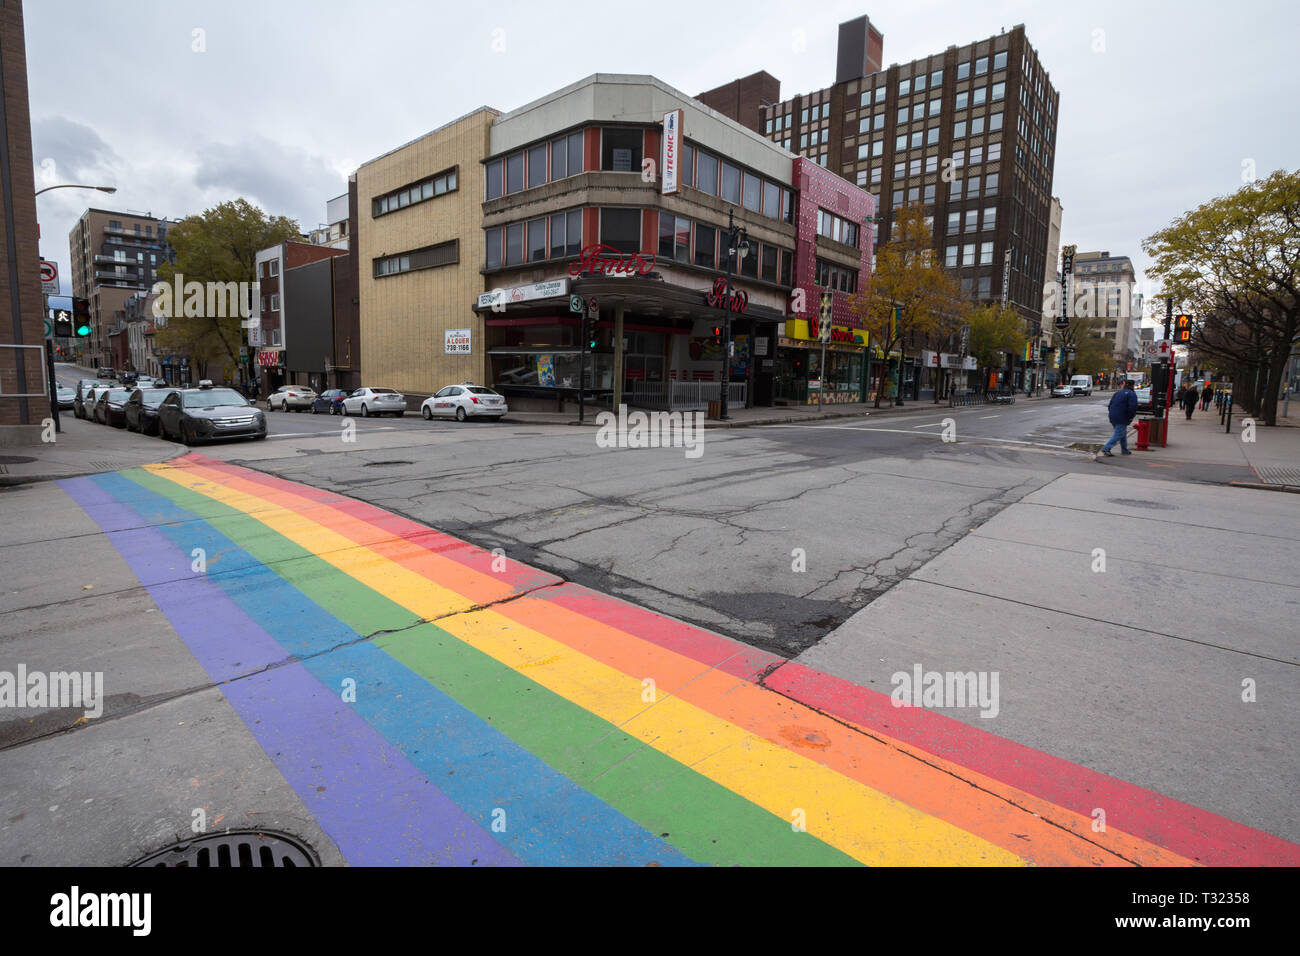 MONTREAL, CANADA - NOVEMBER 10, 2018: pedestrian zebra painted as a rainwbow gay flag in Le Village, the gay district of the city center of Montreal,  - Stock Image